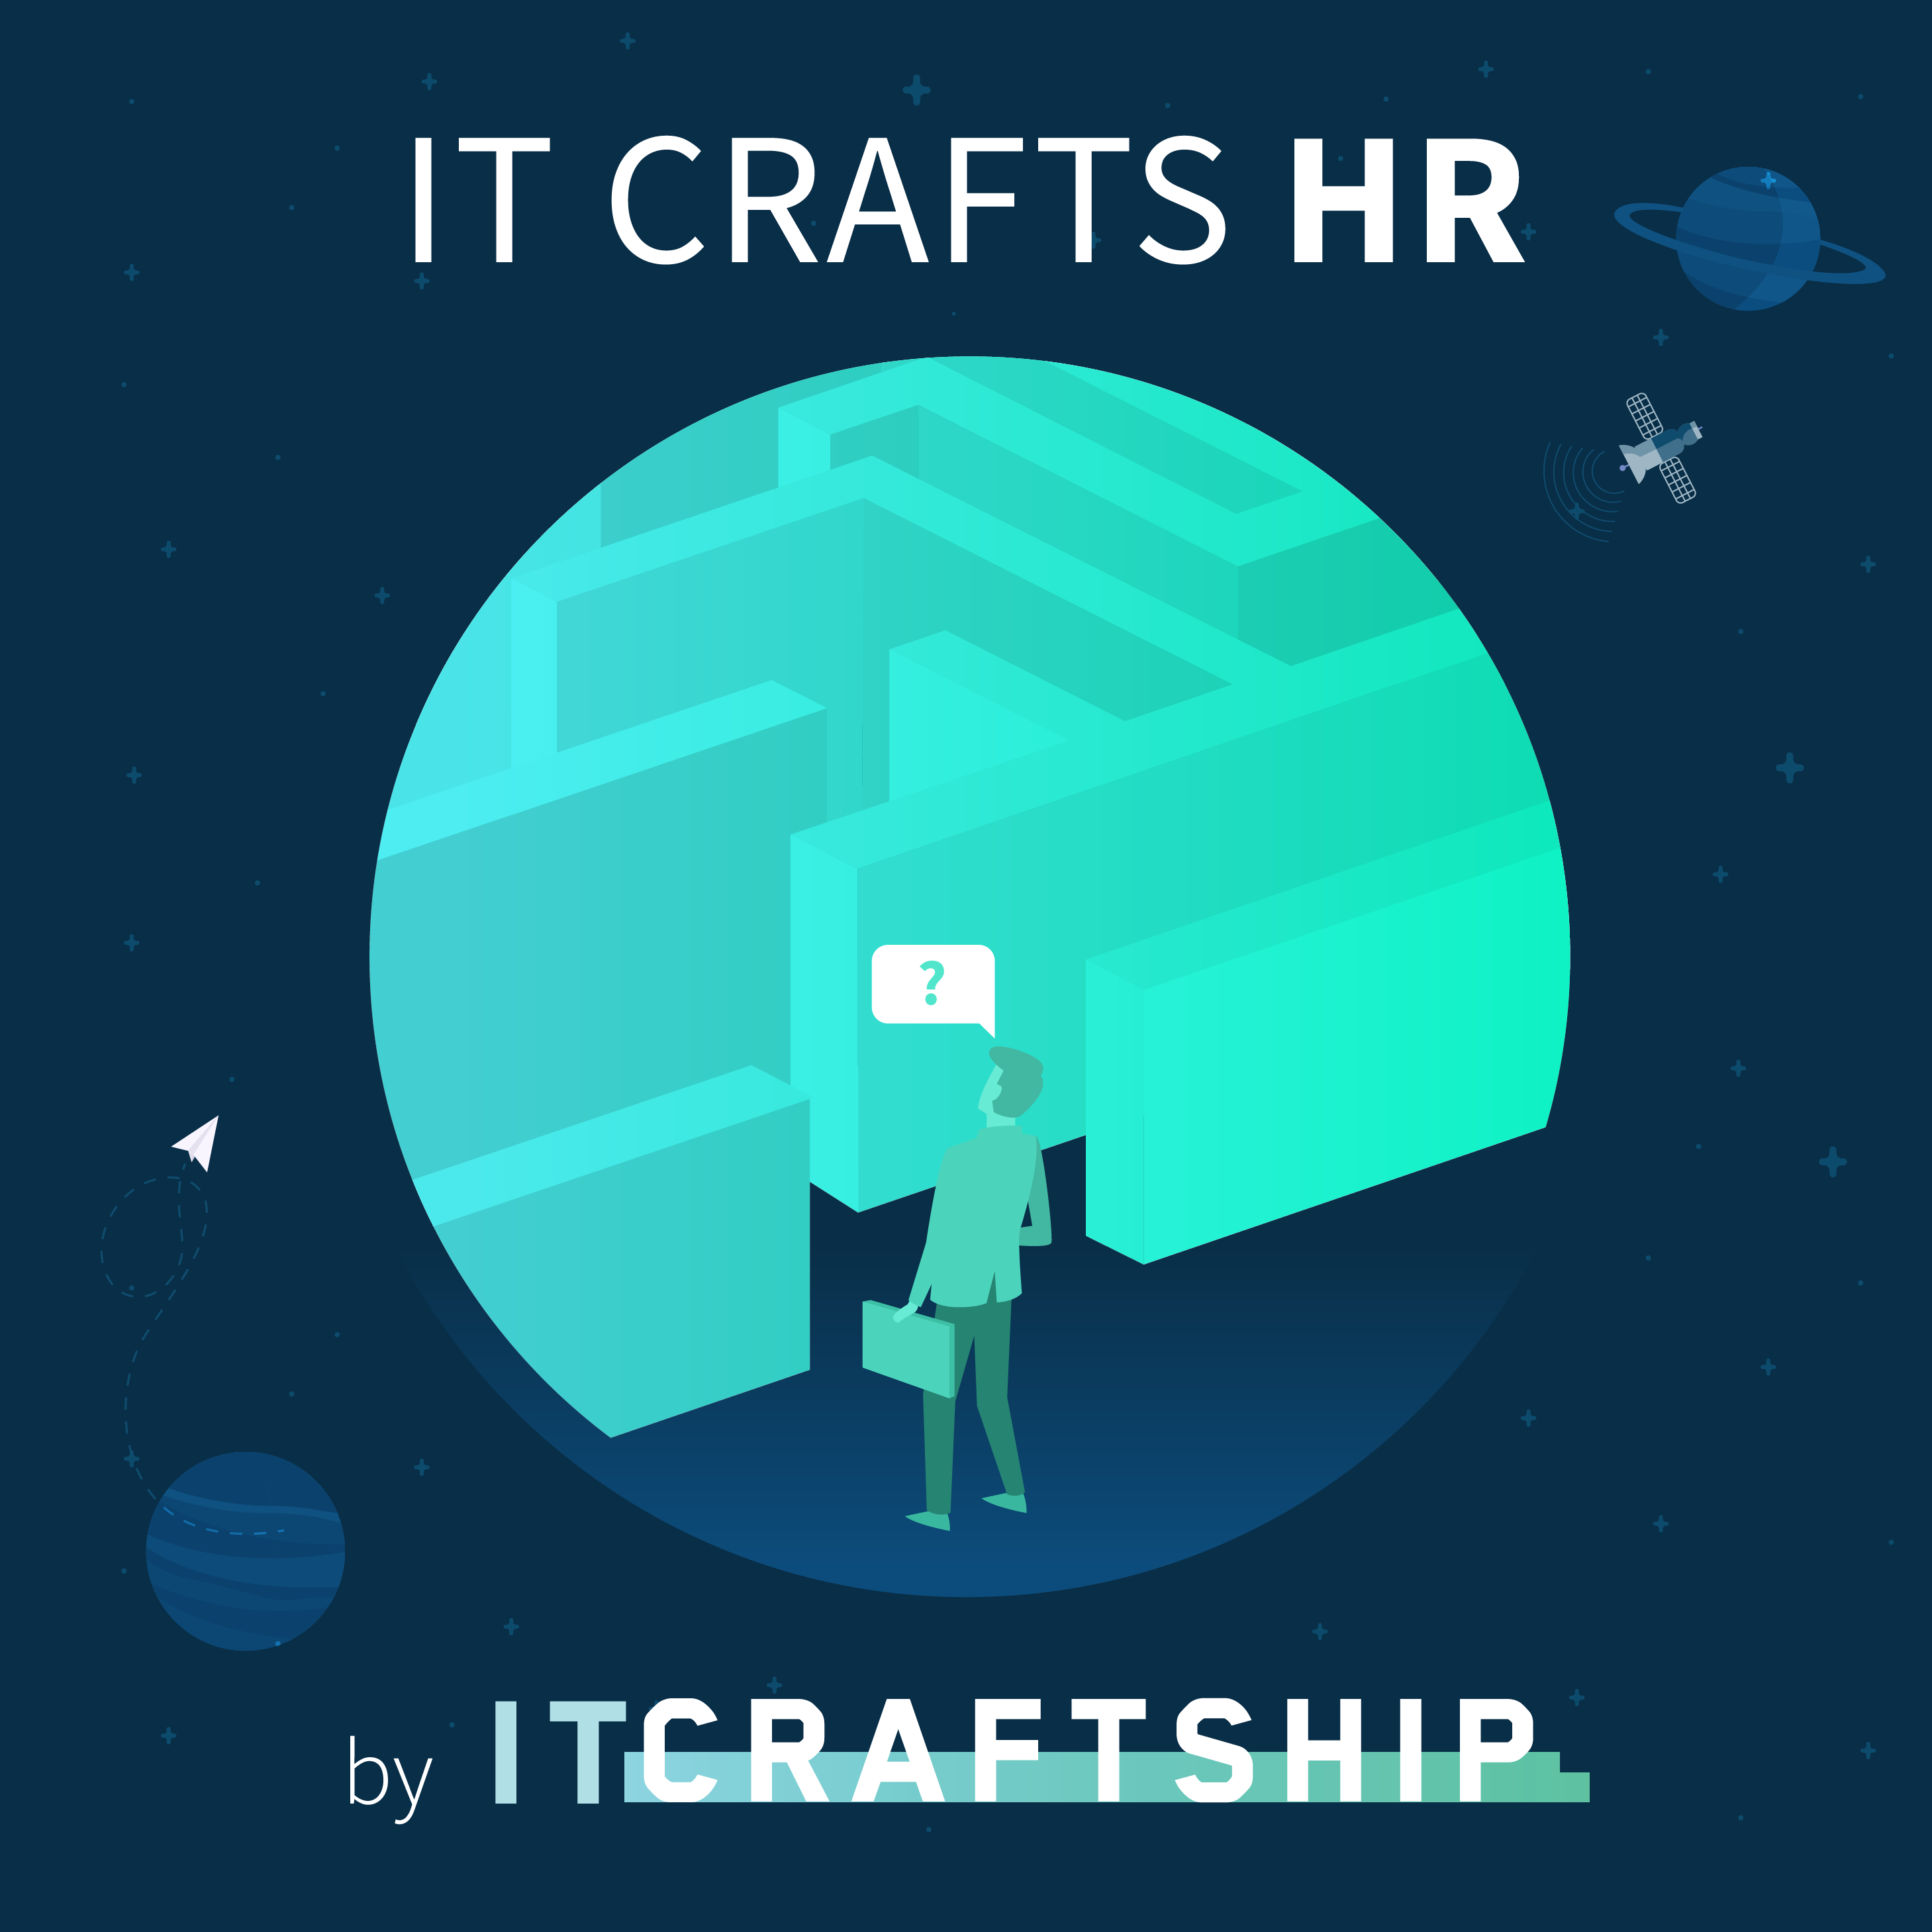 IT Crafts HR – Gerald Bot from Polyglot Group